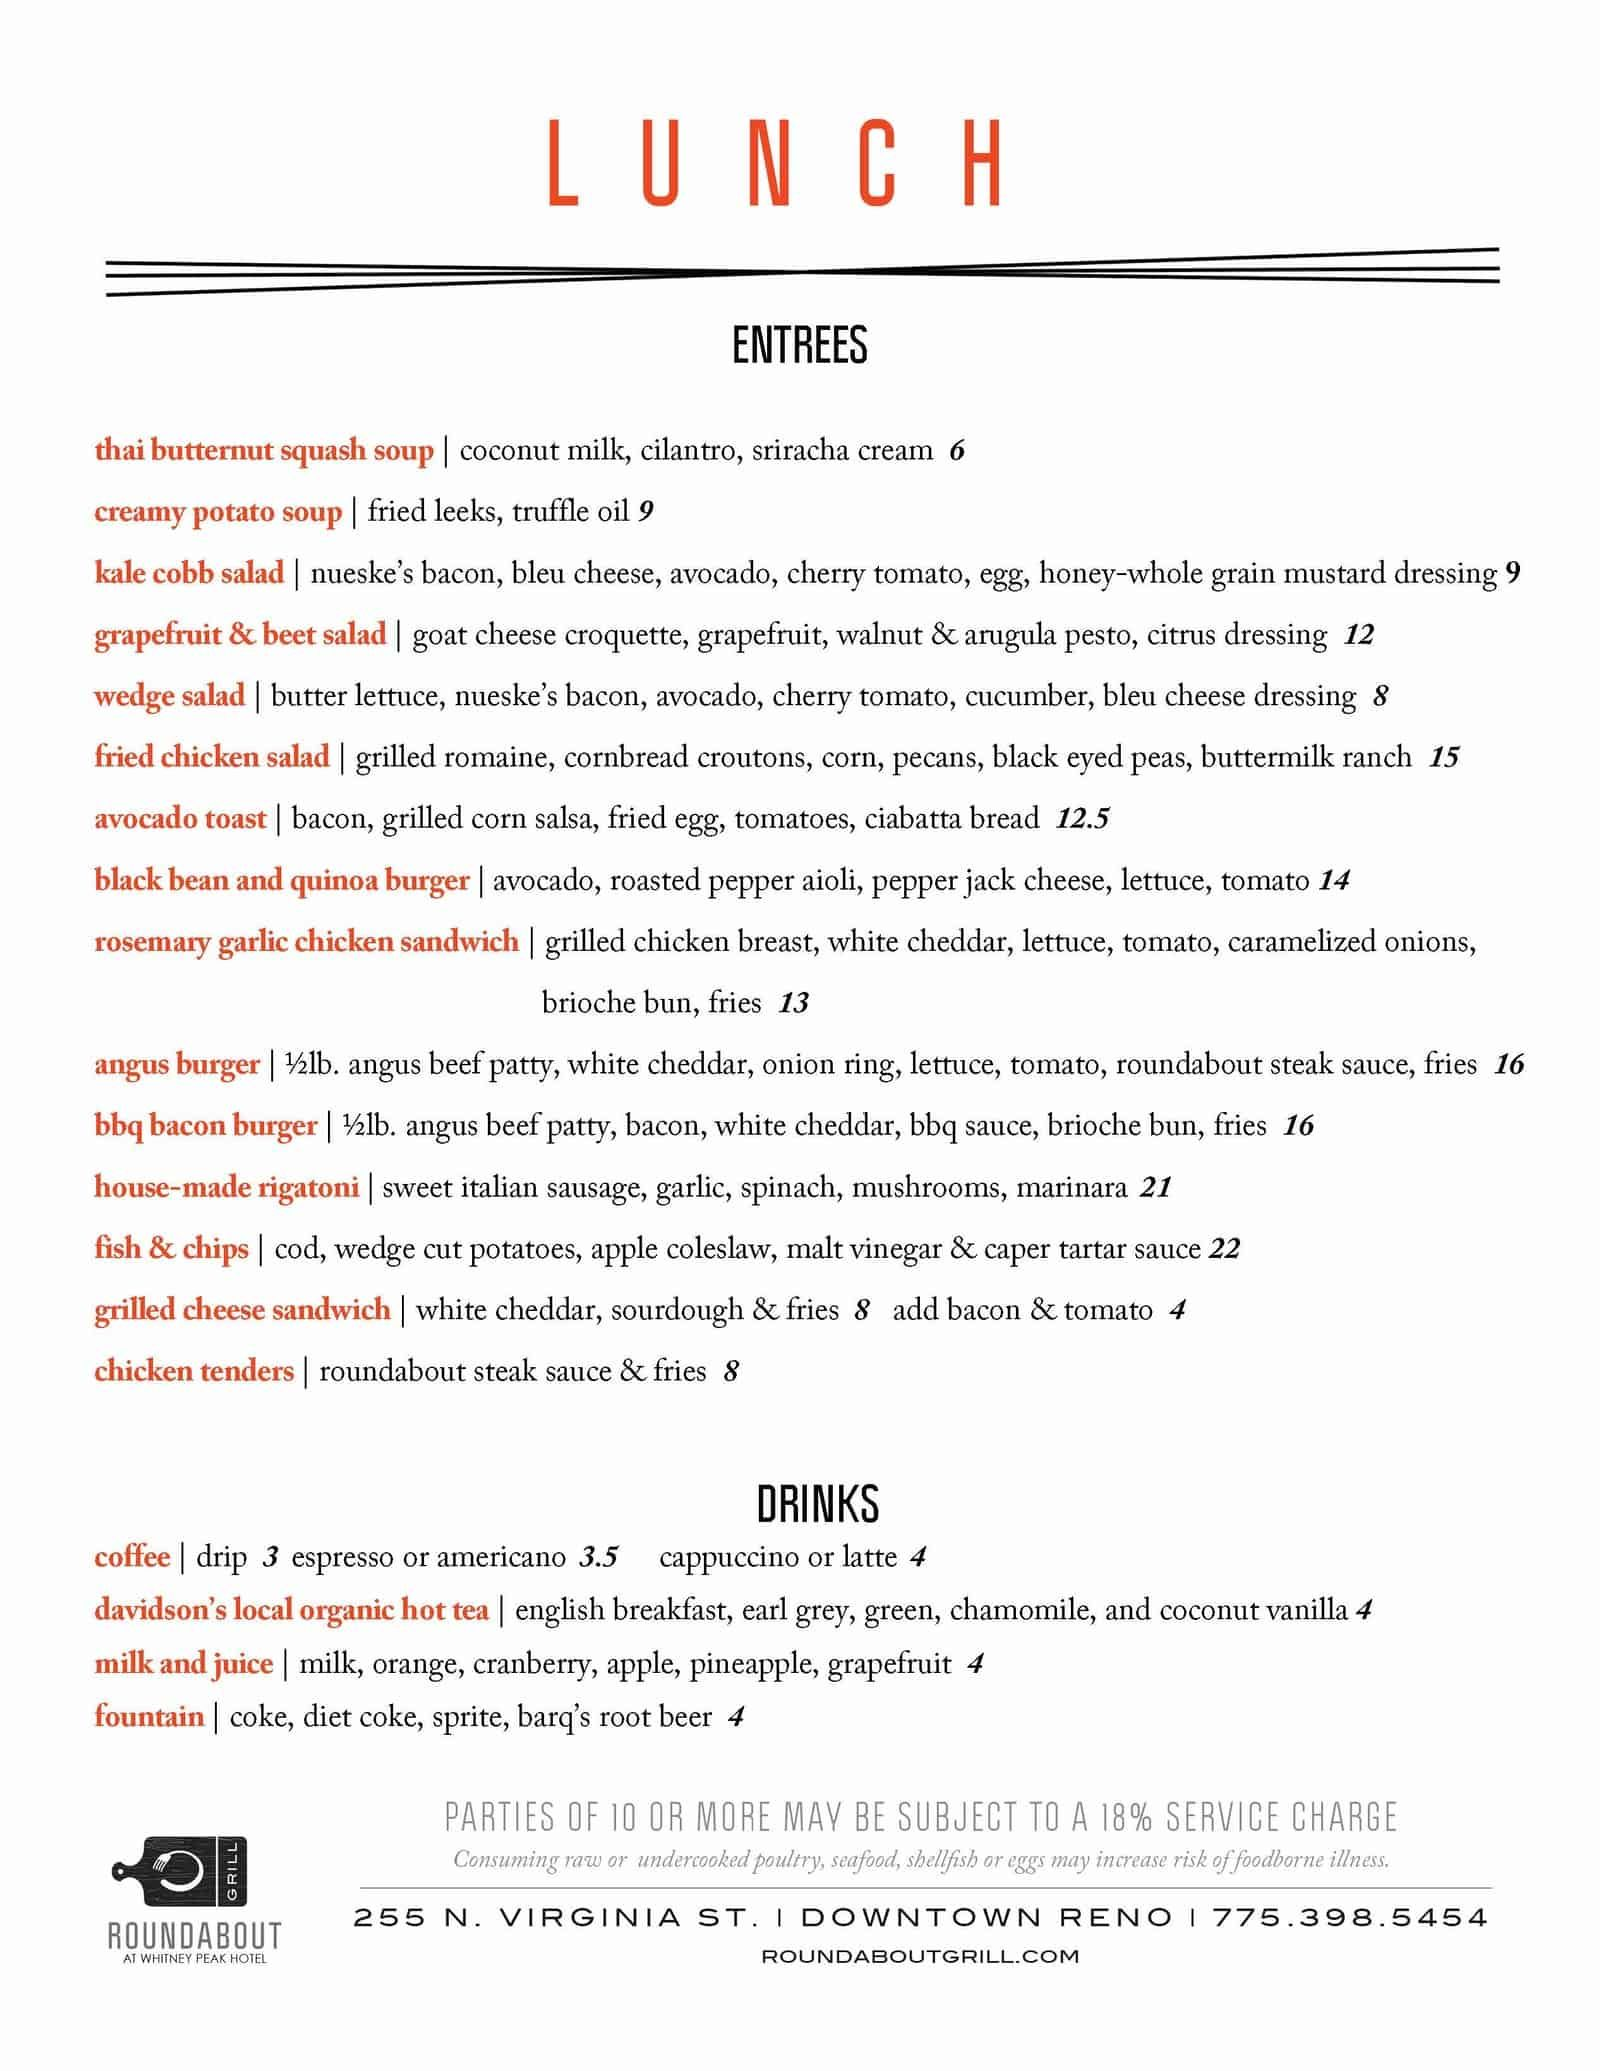 Roundabout Grill Menus Downtown Reno Restaurant